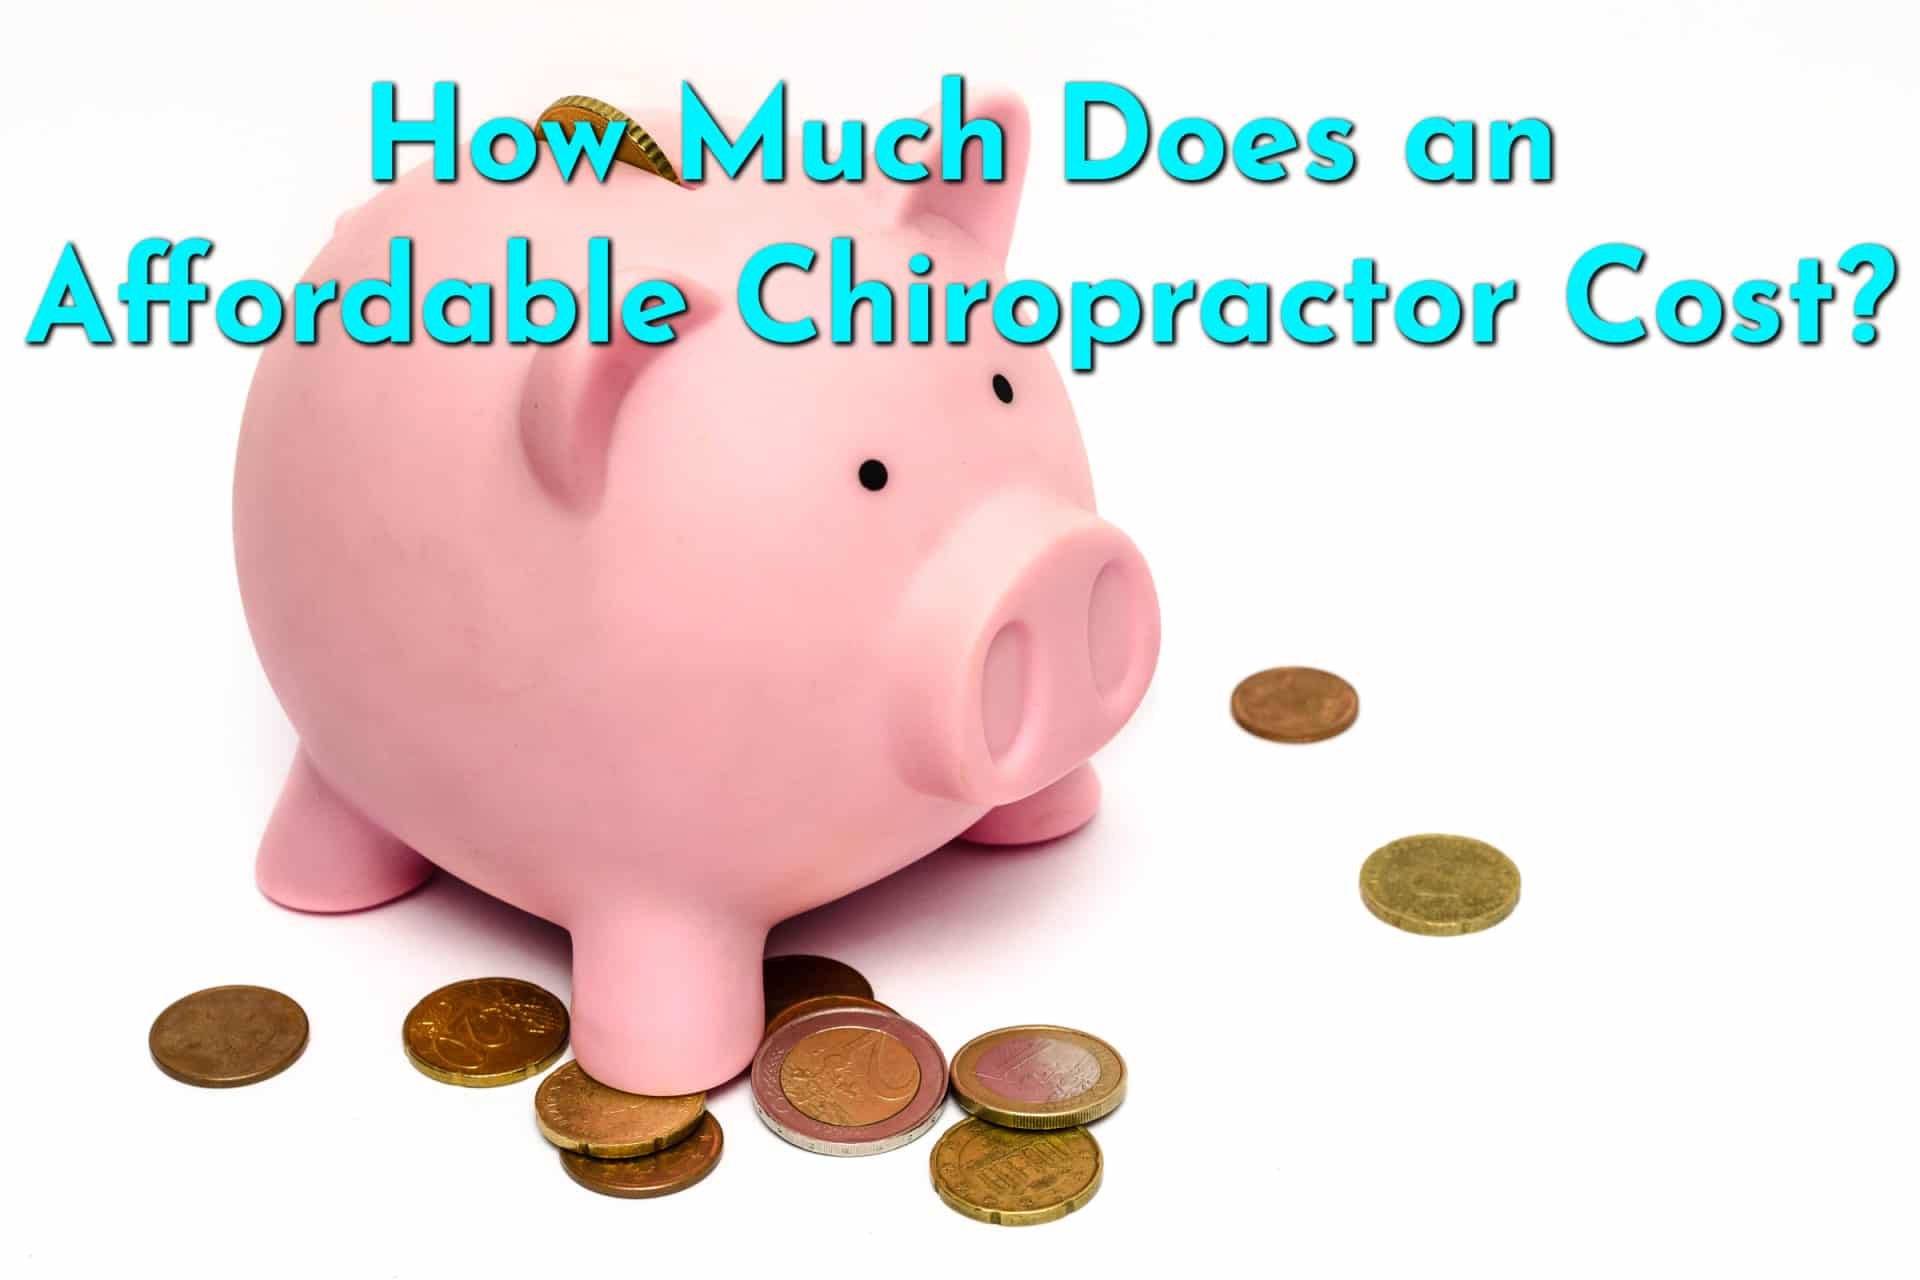 How Affordable is a Chiropractor Really?